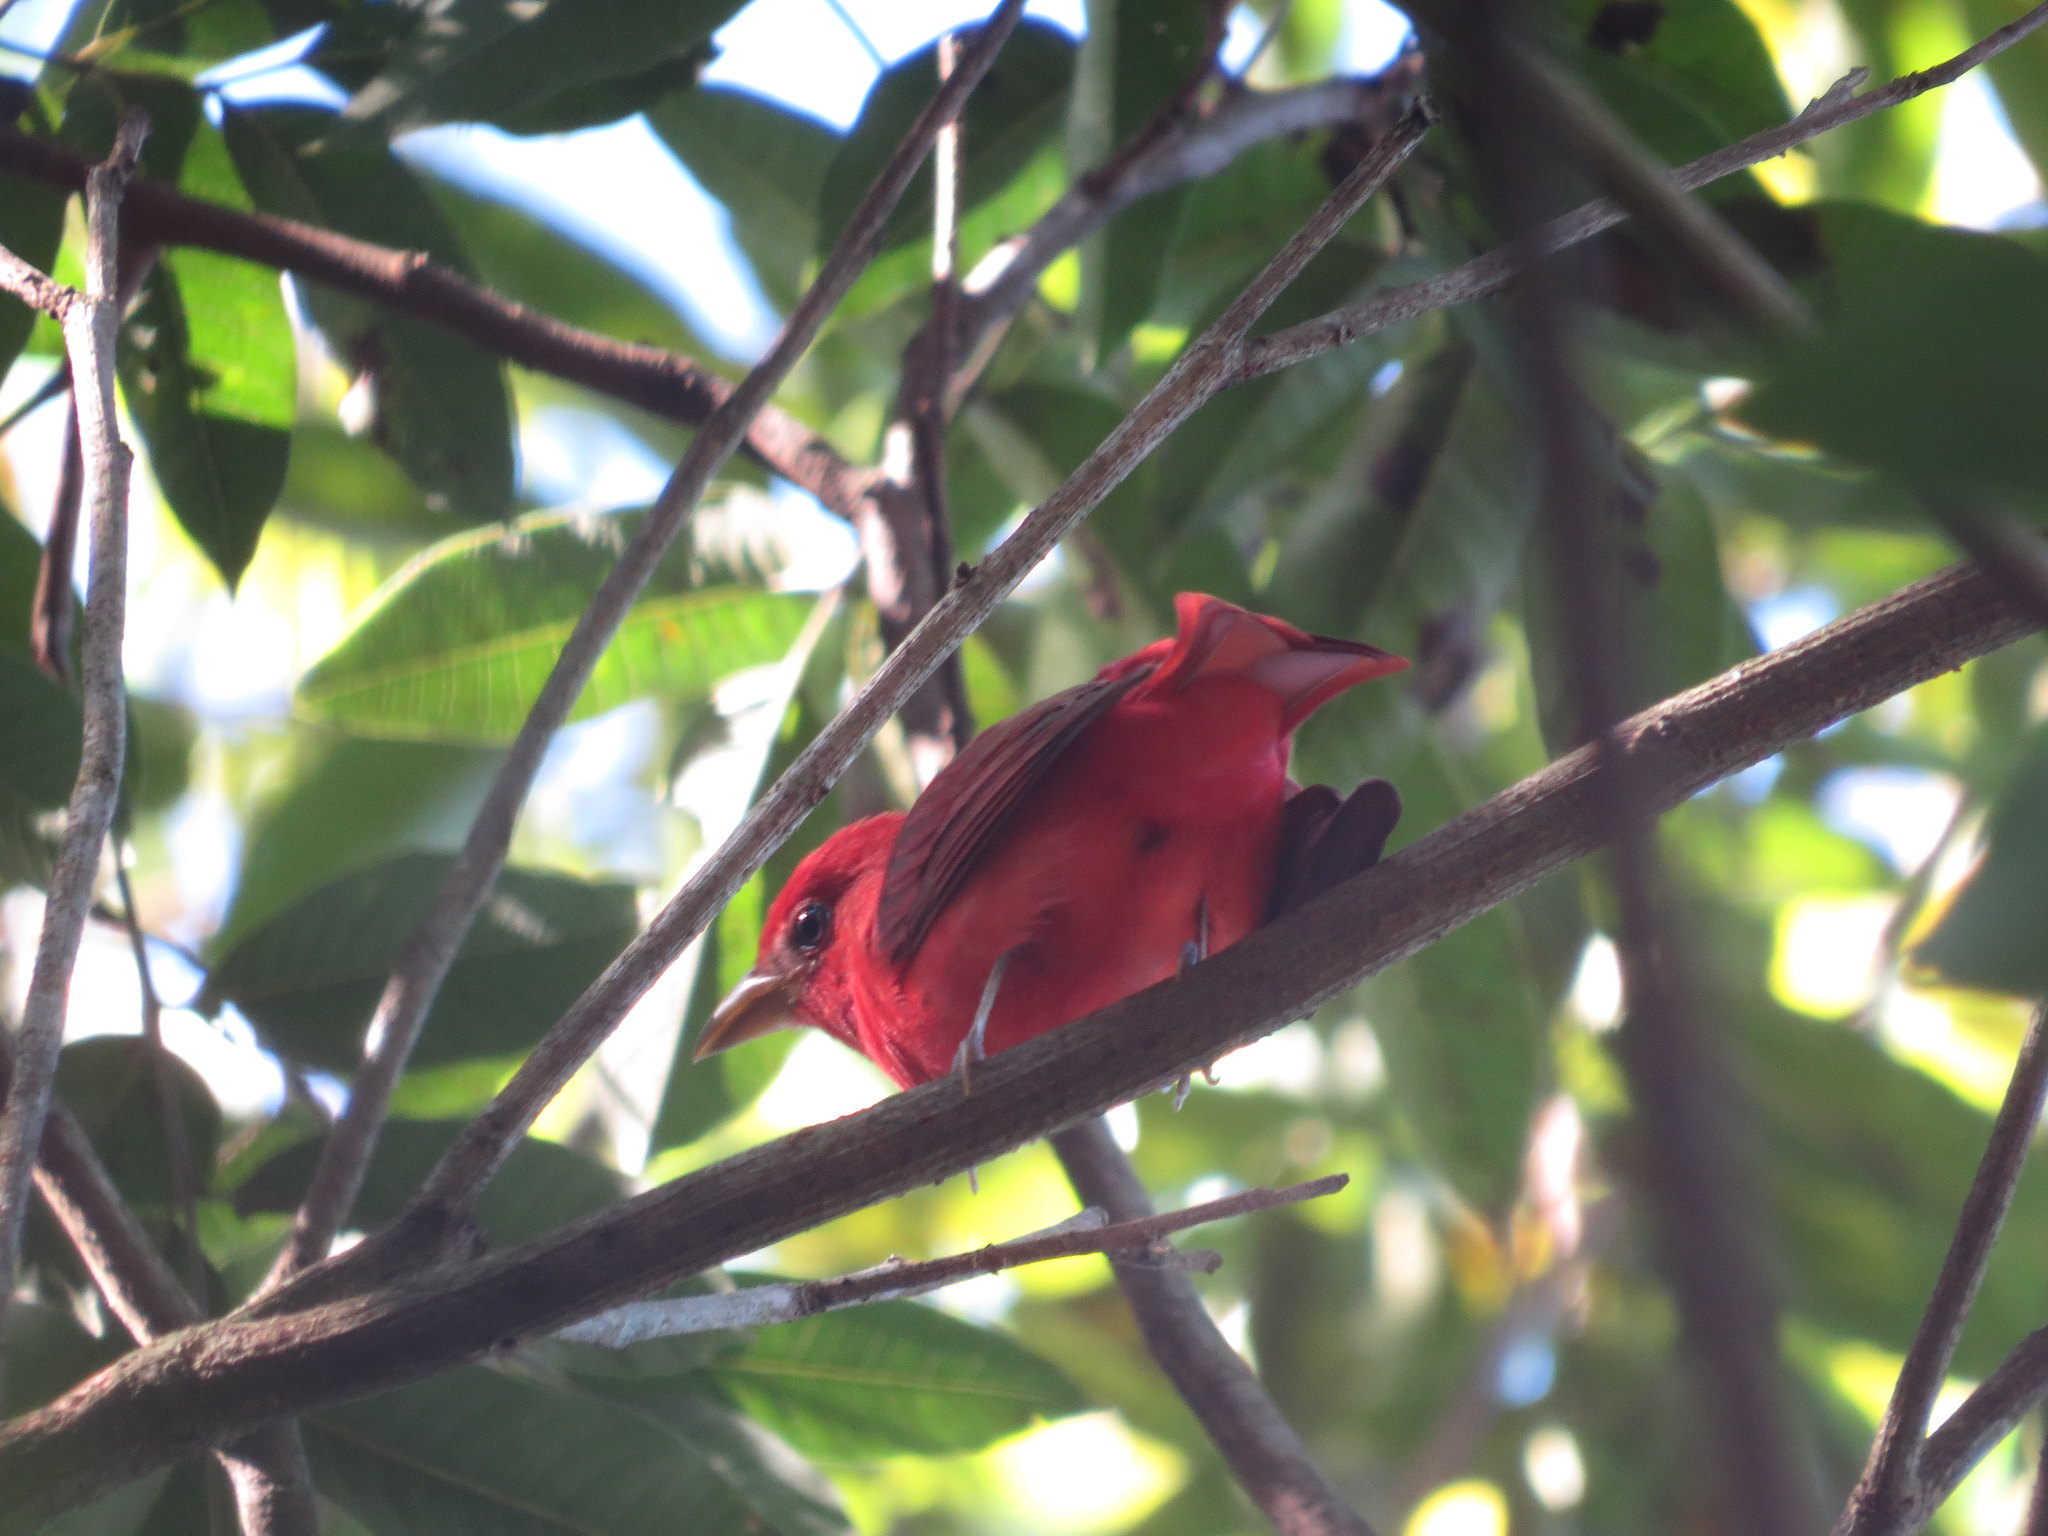 Summer Tanager by Seth Inman - La Paz Group